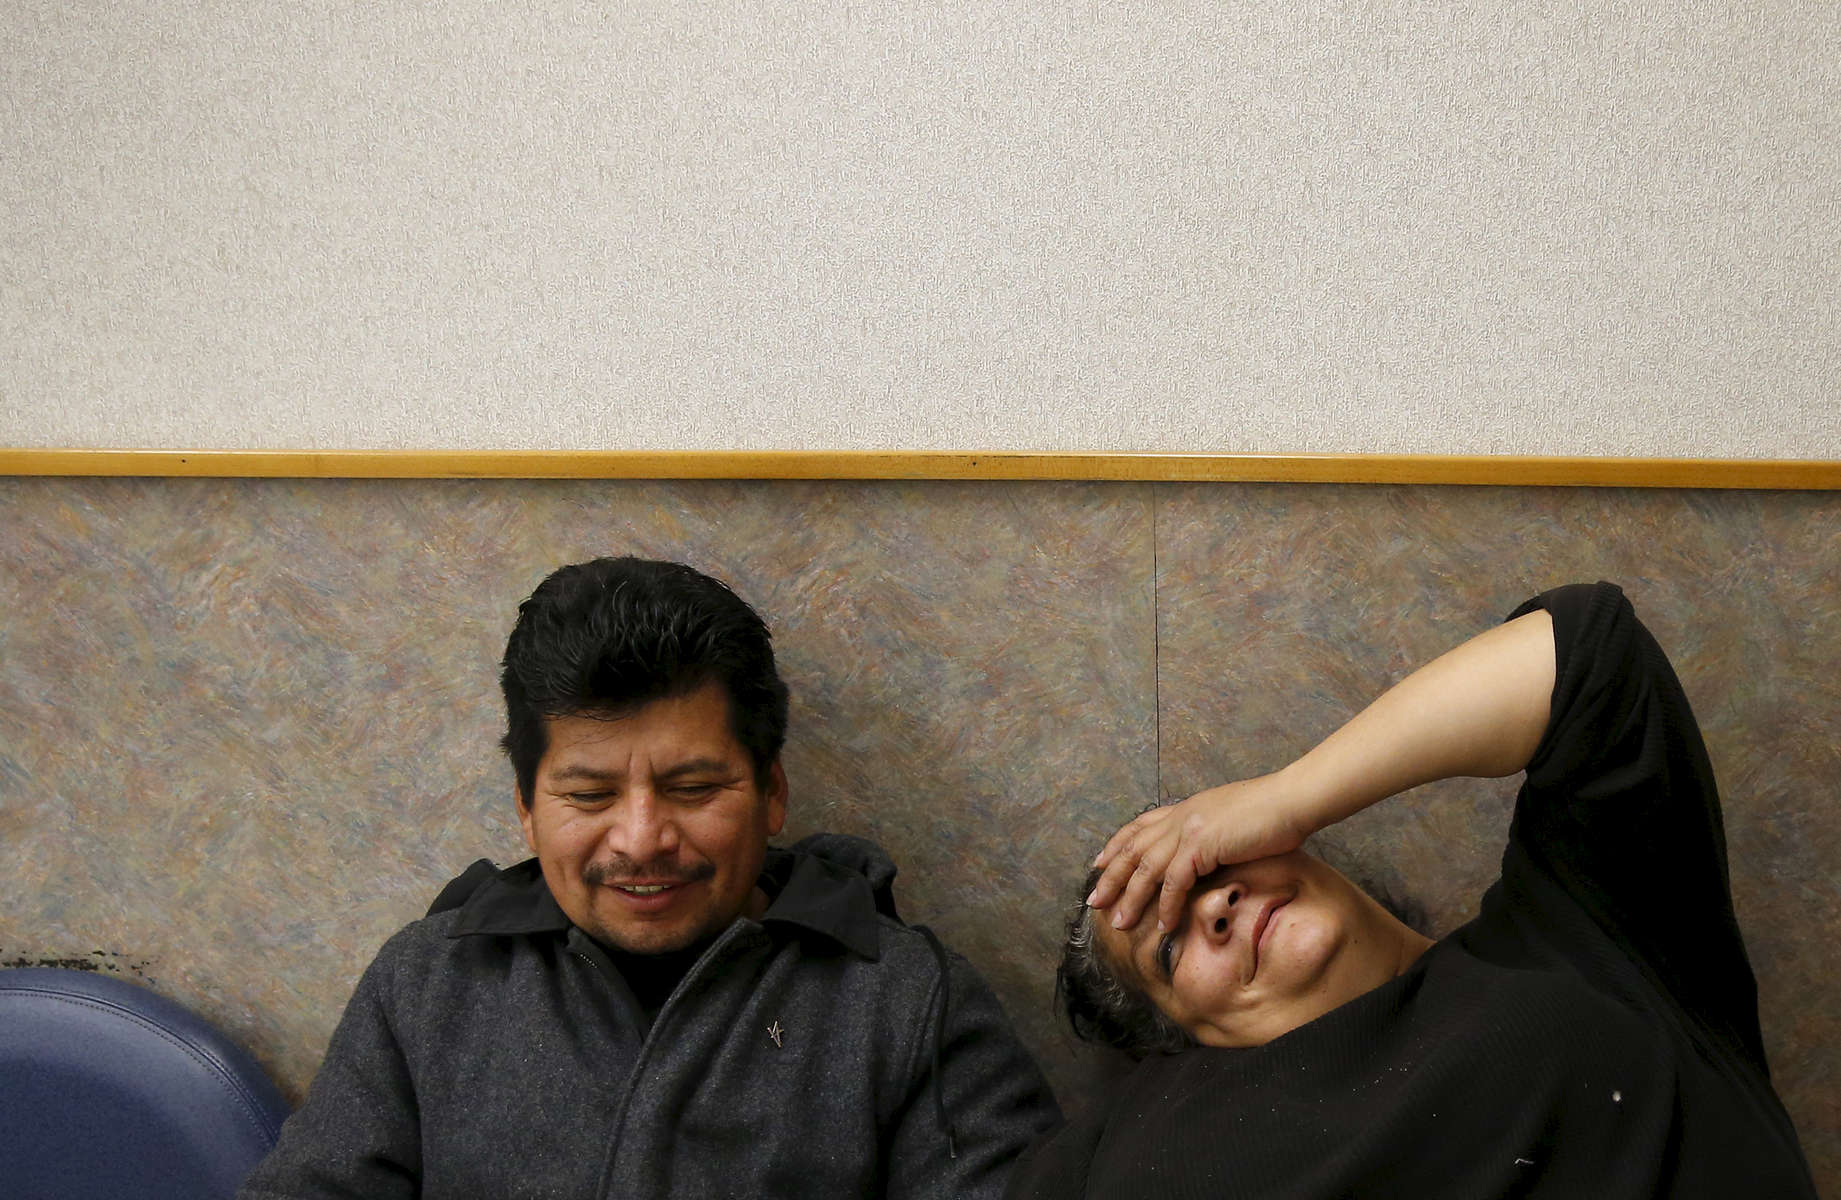 Raquel's husband, Jose, sits with Raquel at Walgreens to keep her company as she waits for her nine prescriptions. Jose was different from the other men who had been in Raquel's life. He drank too much, but he didn't do drugs. He was quiet, supportive and he stuck around.